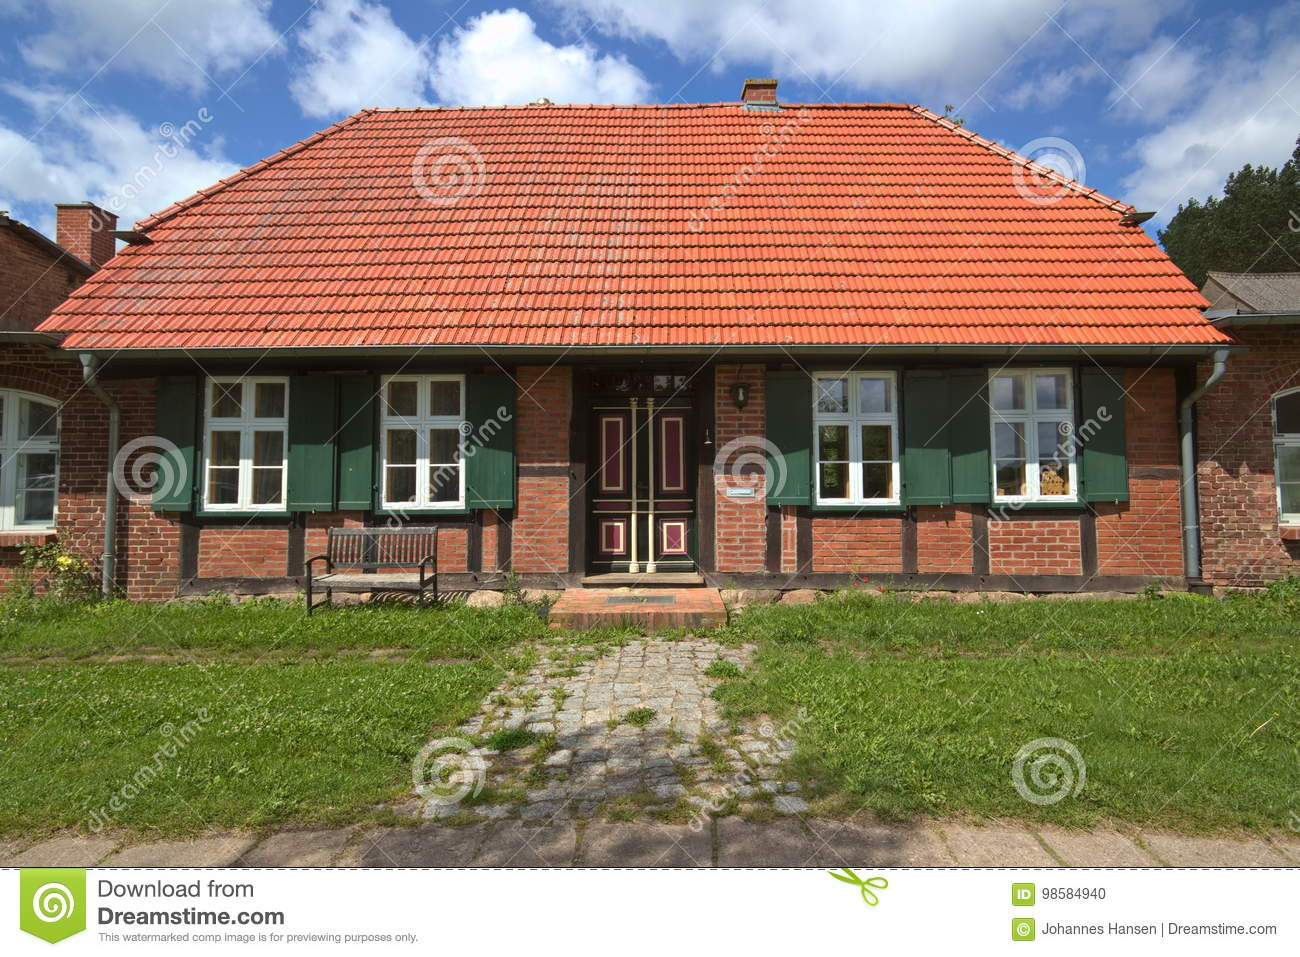 Facade of house listed as monument at Jager, Mecklenburg-Vorpommern, Germany